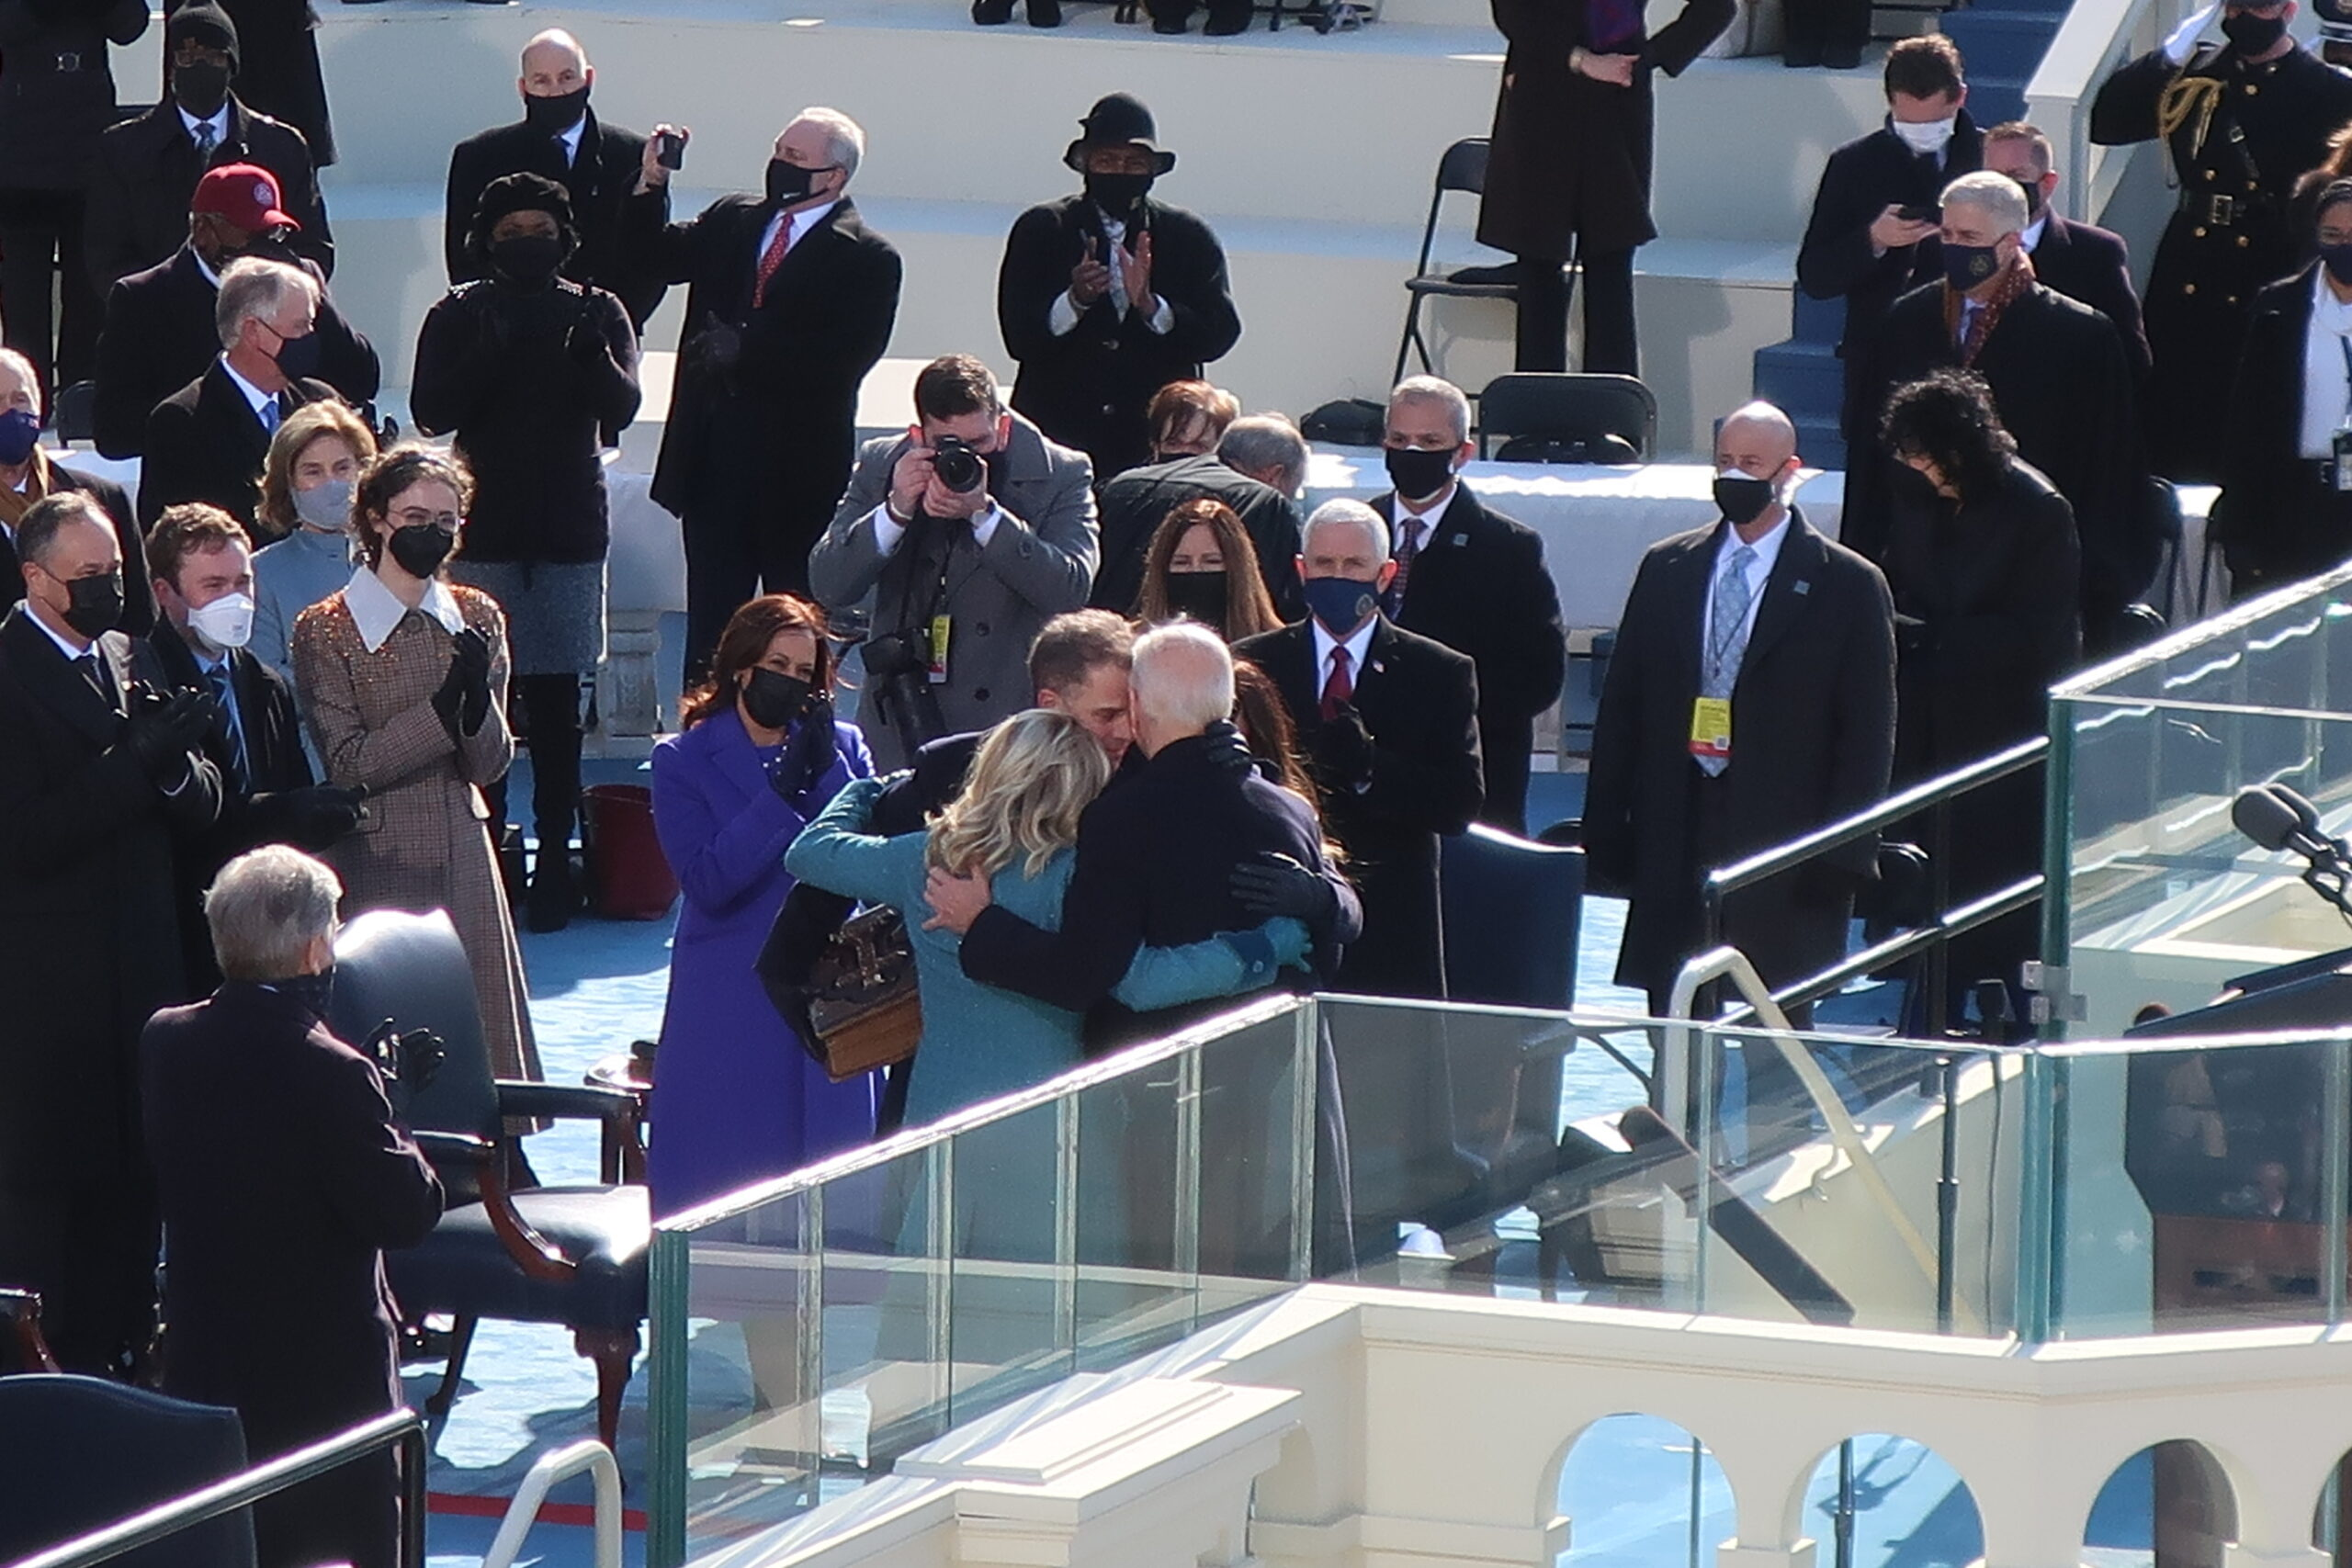 The Biden family embraces after Joe Biden is sworn in as the 46th president of the United States, Jan. 20, 2021, in Washington, D.C.